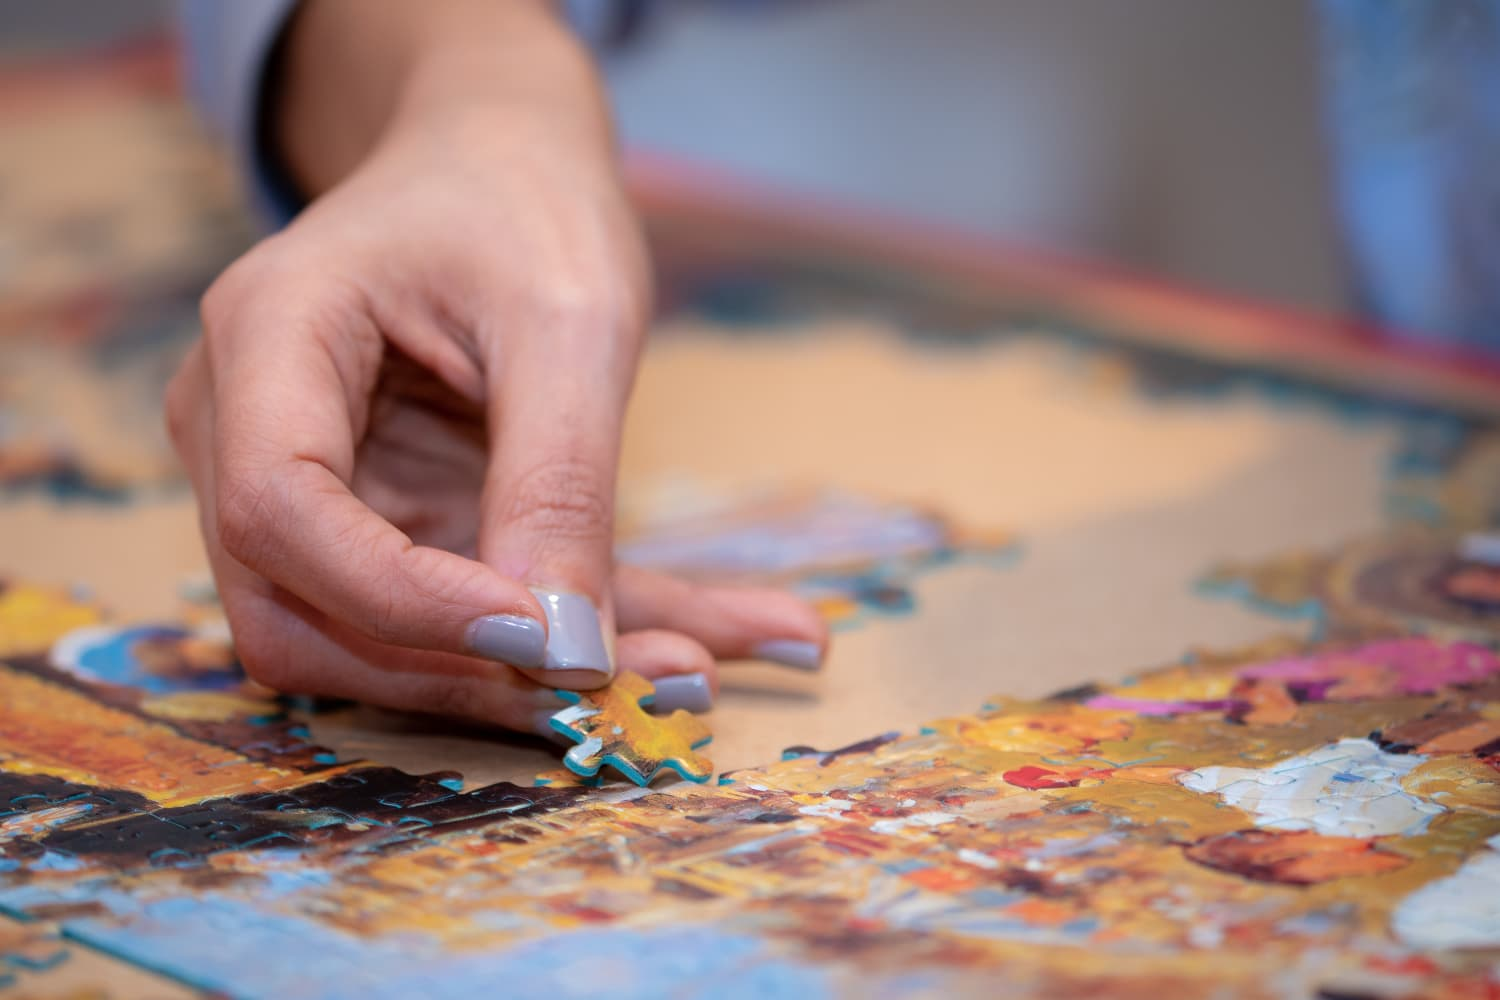 These Jigsaw Puzzles Let You Recreate the Most Famous Works of Art at Home